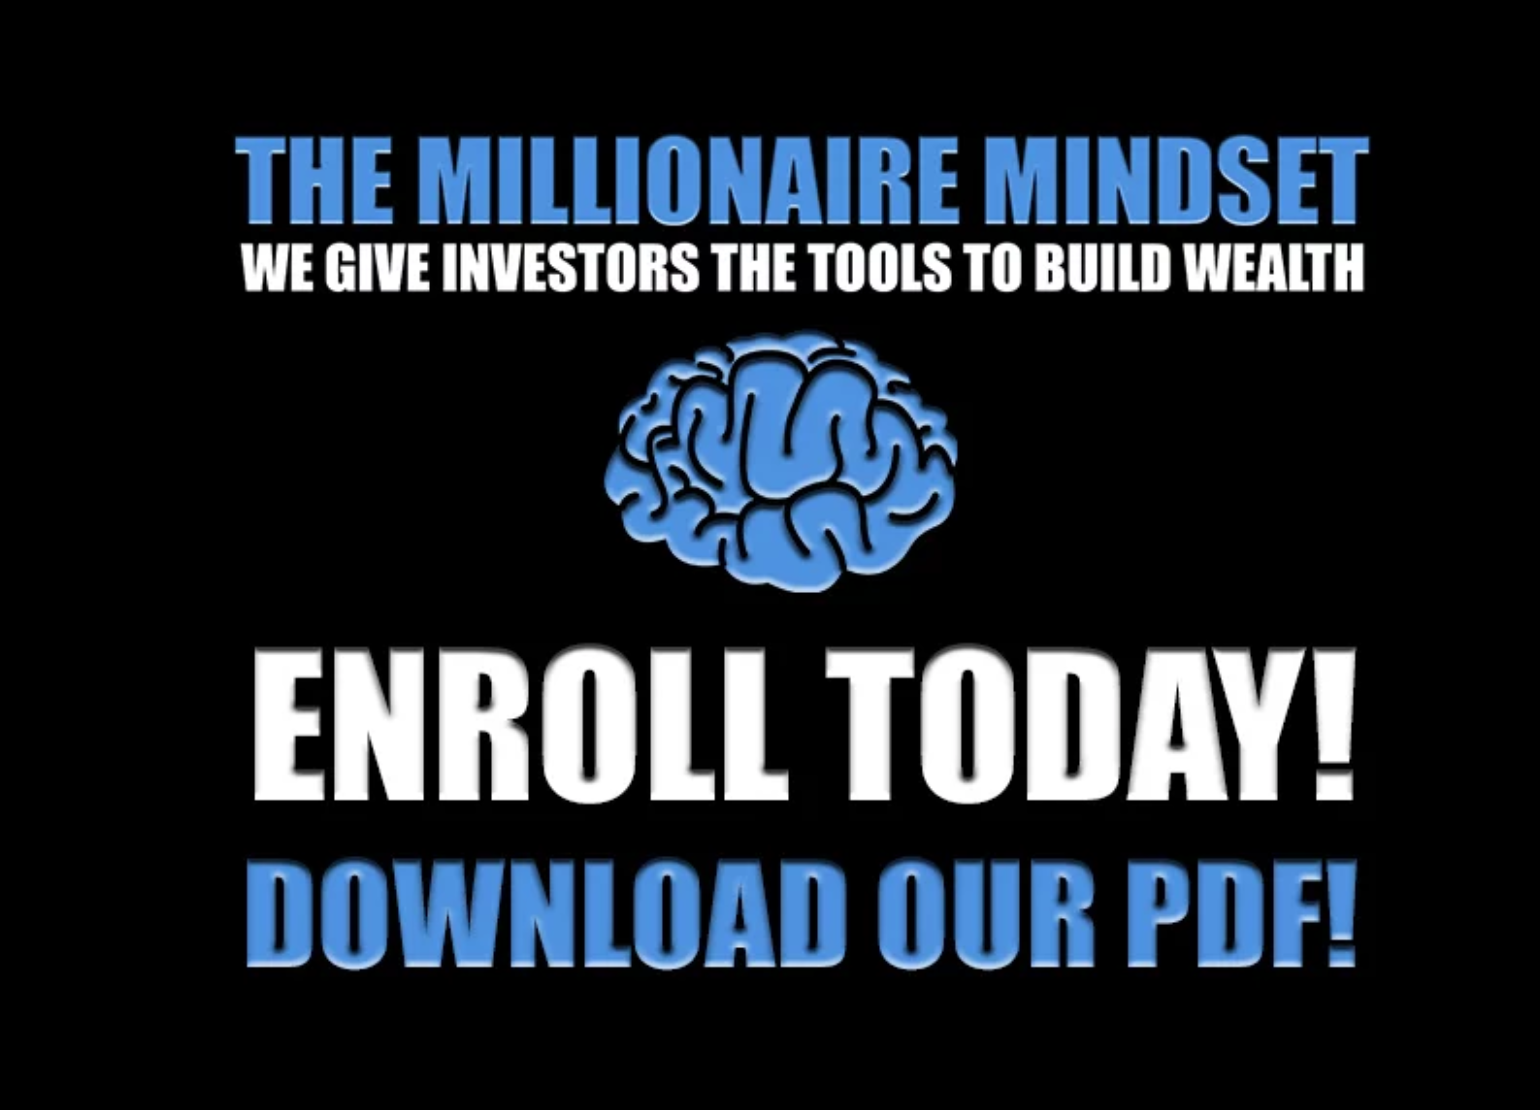 Introducing The Millionaire Mindset Group, comprising millennials on a mission to create millionaire mindset for its clients